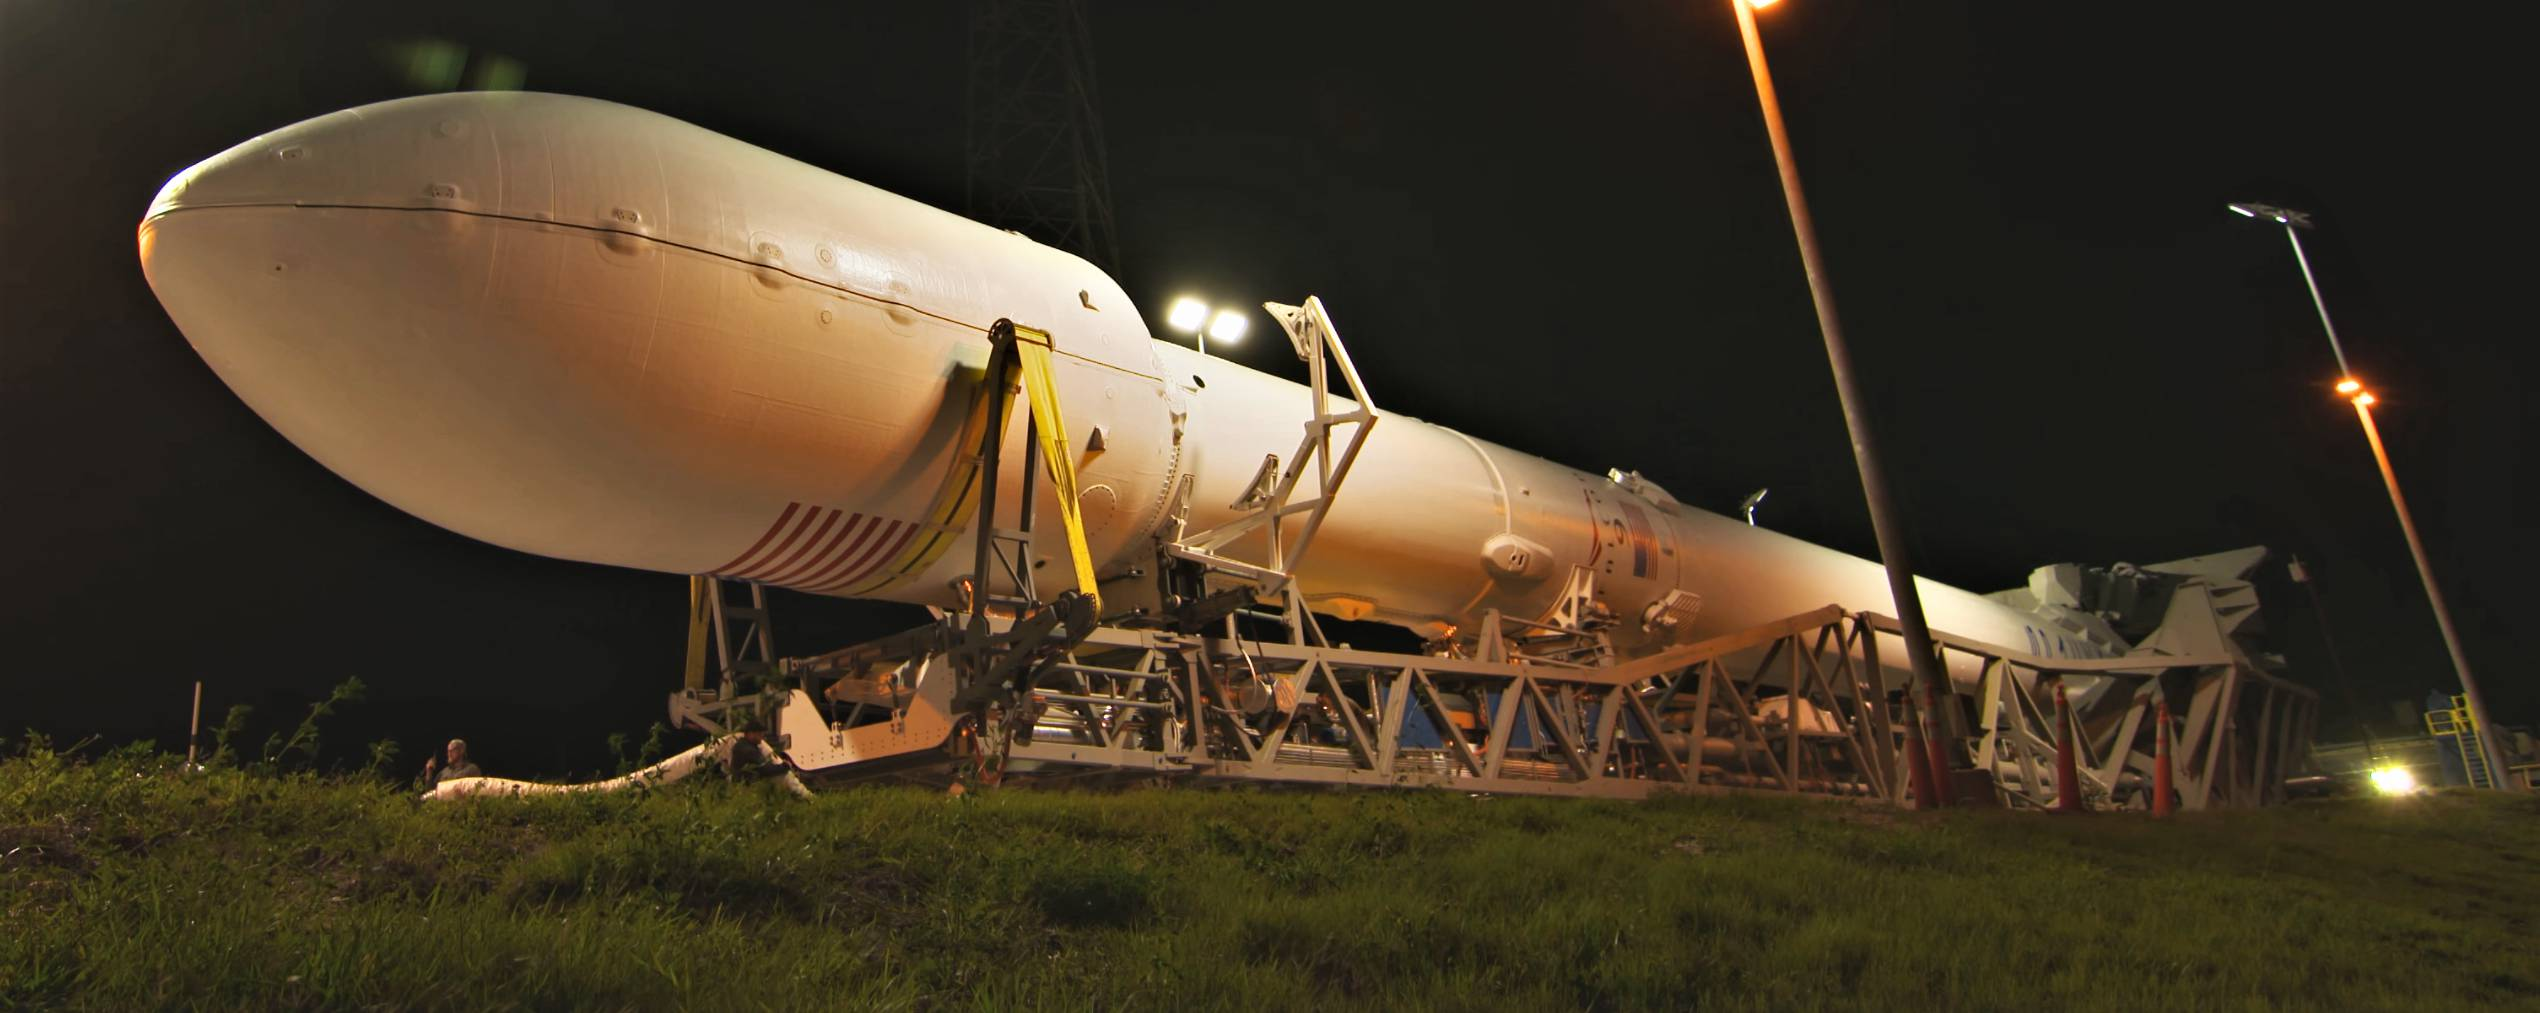 Falcon 9 B1045 TESS rollout (NASA) 13 edit(c)